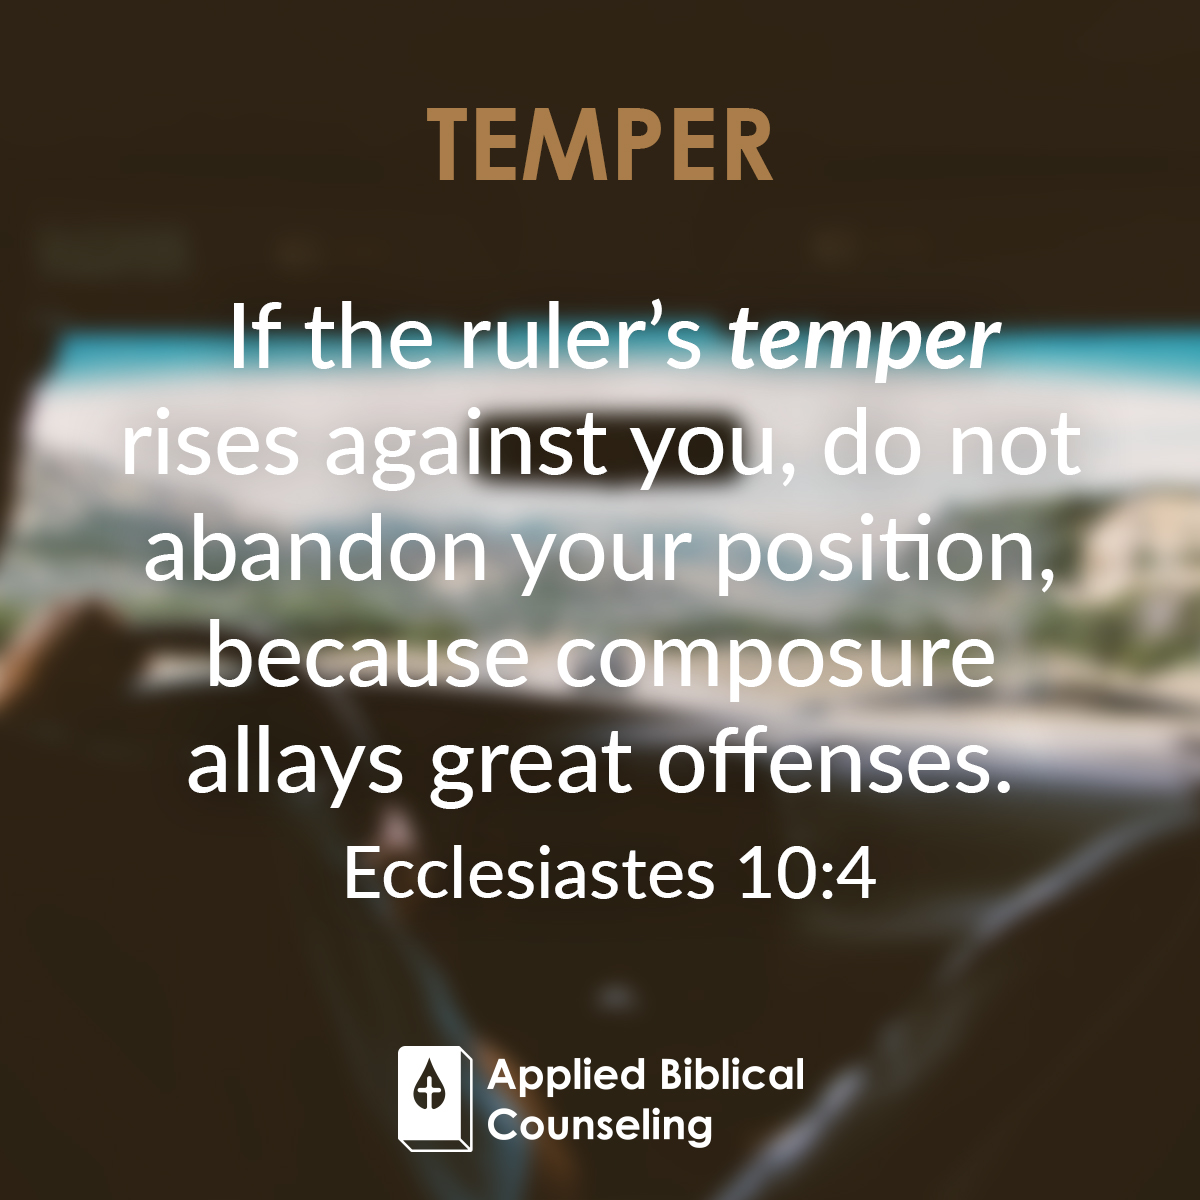 Temper Applied Biblical Counseling 3